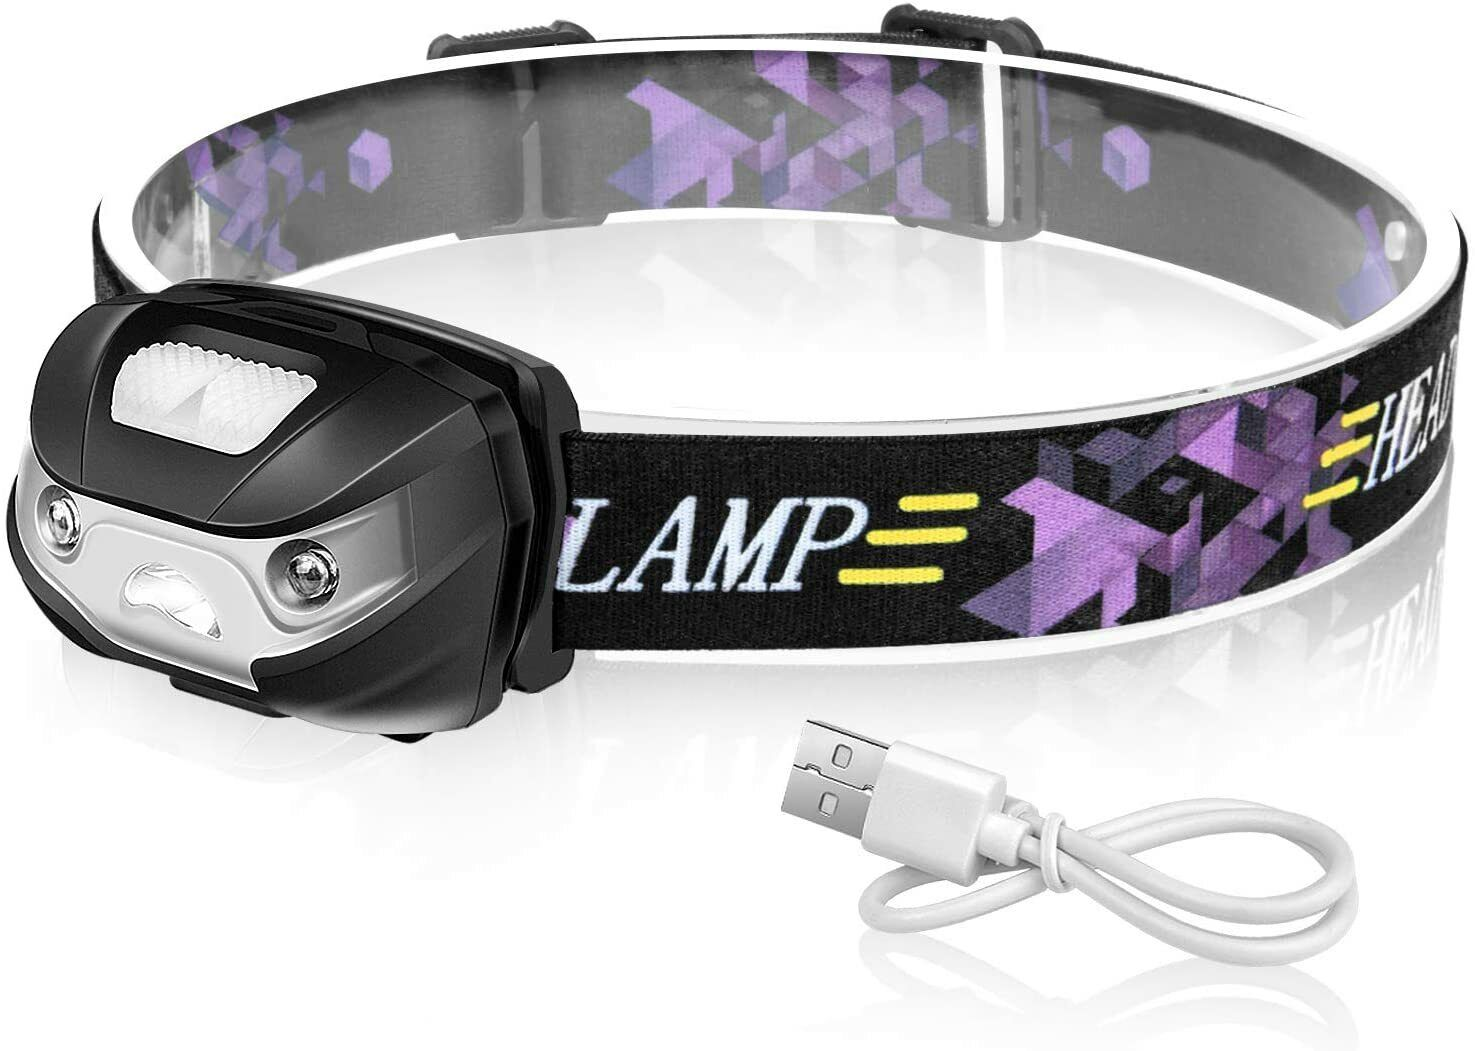 1Pack Hiking /& More Camping IPX6 Water Resistant./Great For Running Rechargeable Sensor Headlamp,600 Lumens White Cree LED Head Lamp Flashlight with Redlight Adjustable Strap